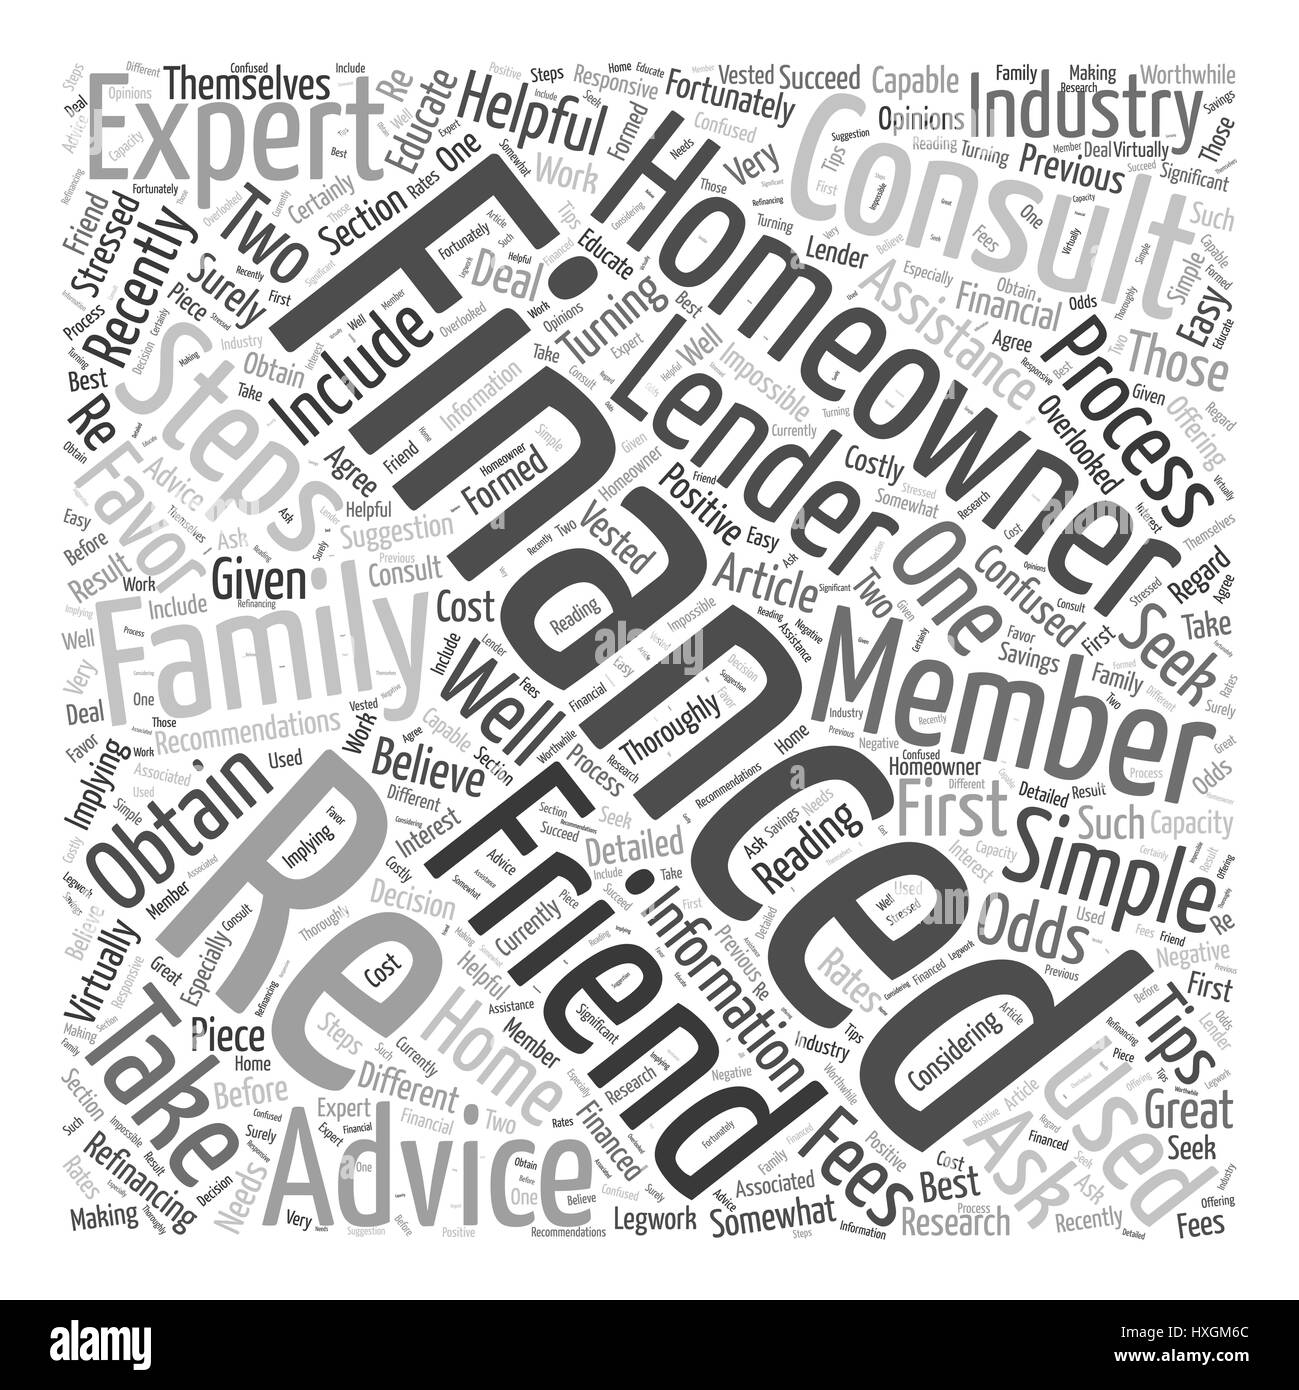 Seek Recommendations When Re Financing Word Cloud Concept - Stock Image